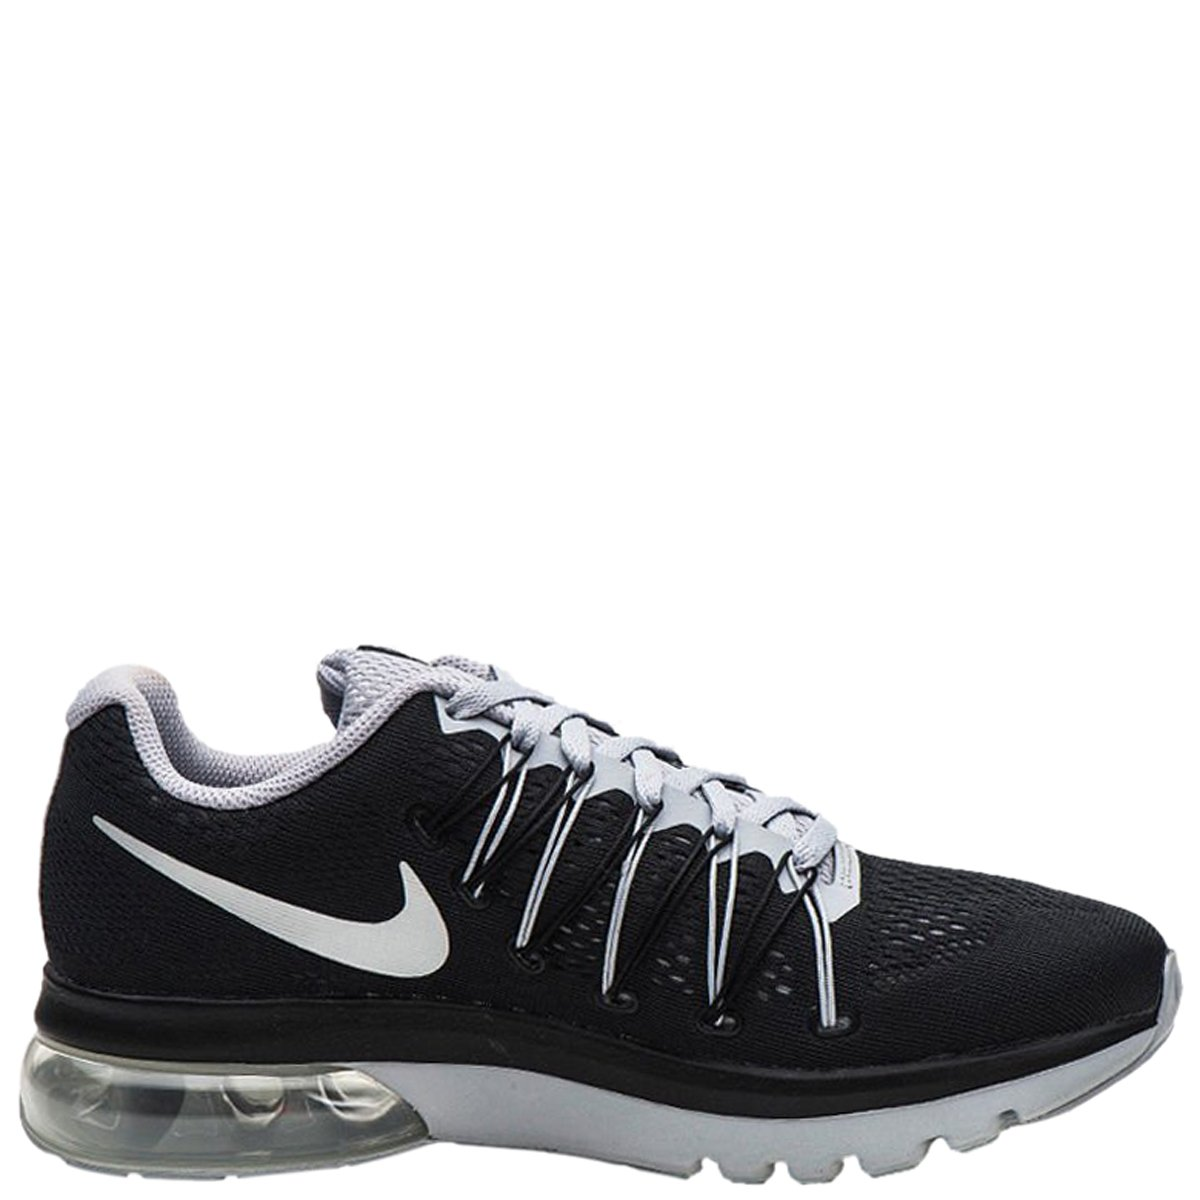 best loved 6257c 99b6a Bizz Store - Tênis Feminino Nike Air Max Excellerate